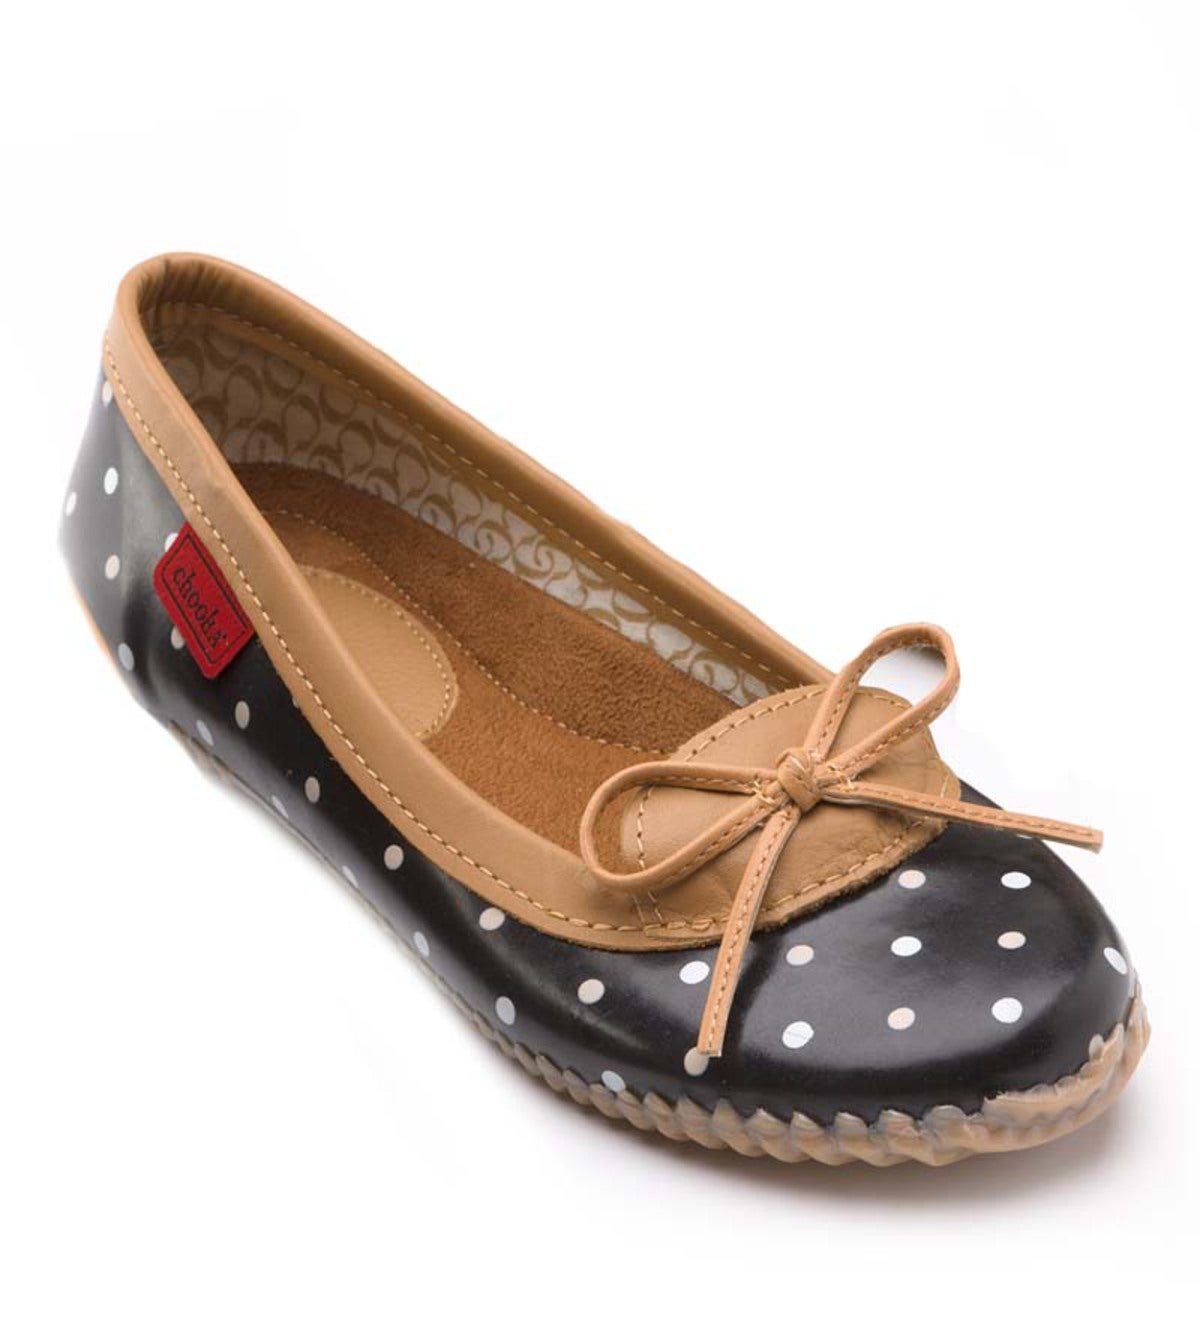 Chooka® Women's Waterproof Duck Slip-On Dot Skimmers - Black Dot - Size 7